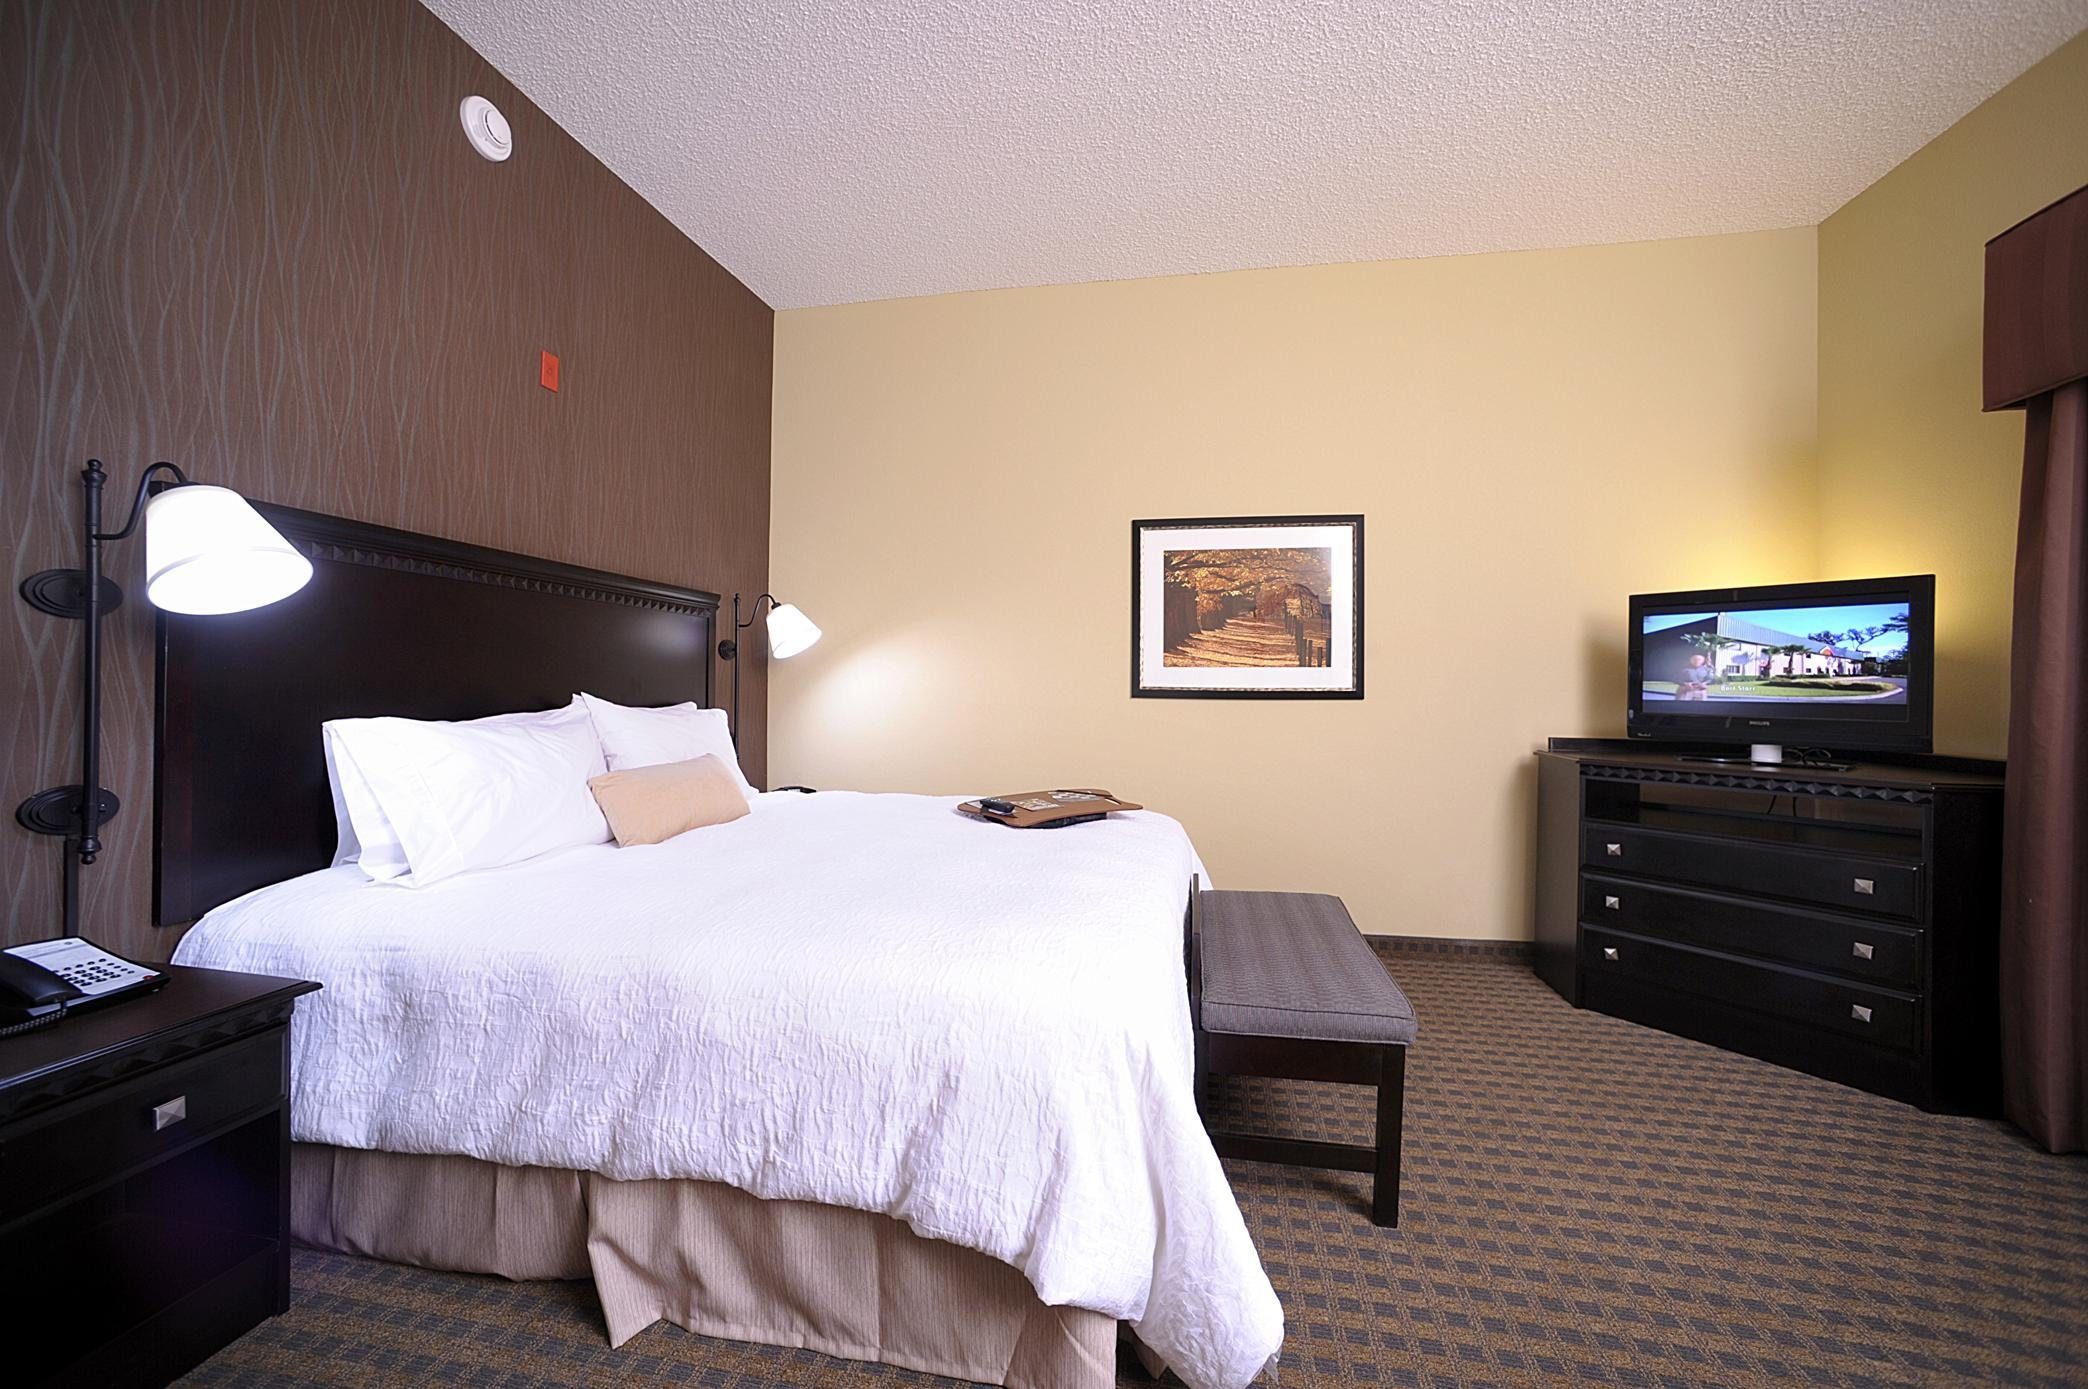 Hampton Inn & Suites Chadds Ford image 29